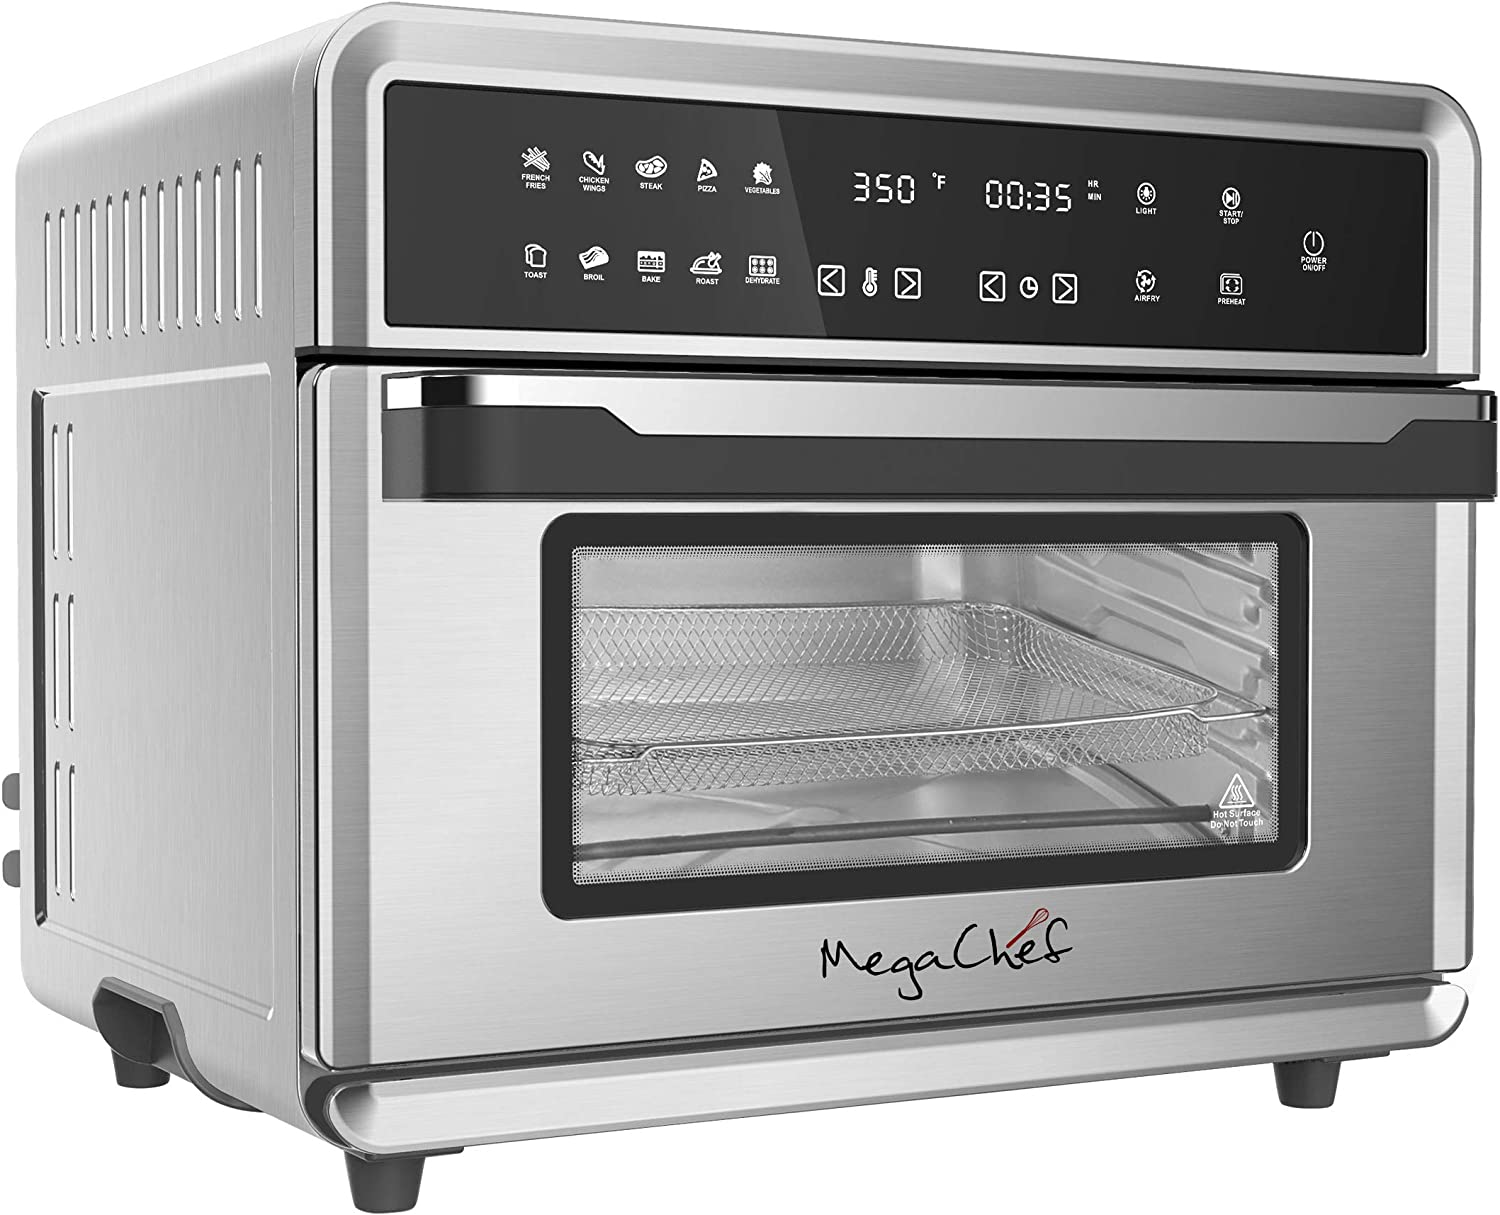 Megachef 10 in 1 Electronic Multifunction 360 Degree Hot Air Technology Countertop Oven, Silver Chrome, 25 Liter Capacity